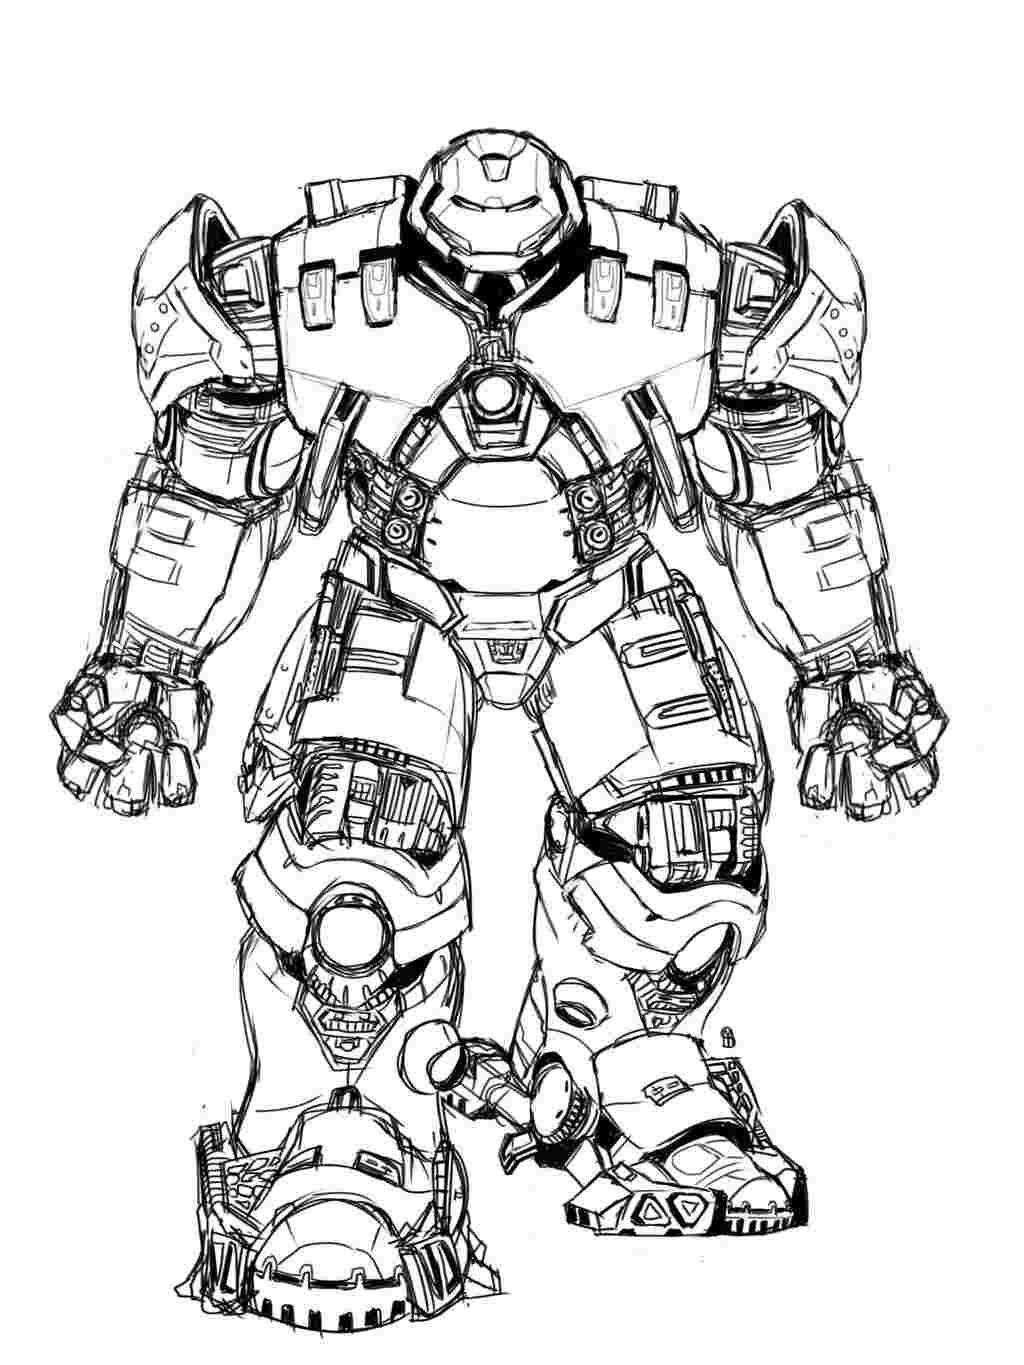 Iron Man Hulk Buster Armor Coloring Pages Throughout Most Of The Character S Publication His Iron Man Drawing Iron Man Art Iron Man Hulkbuster